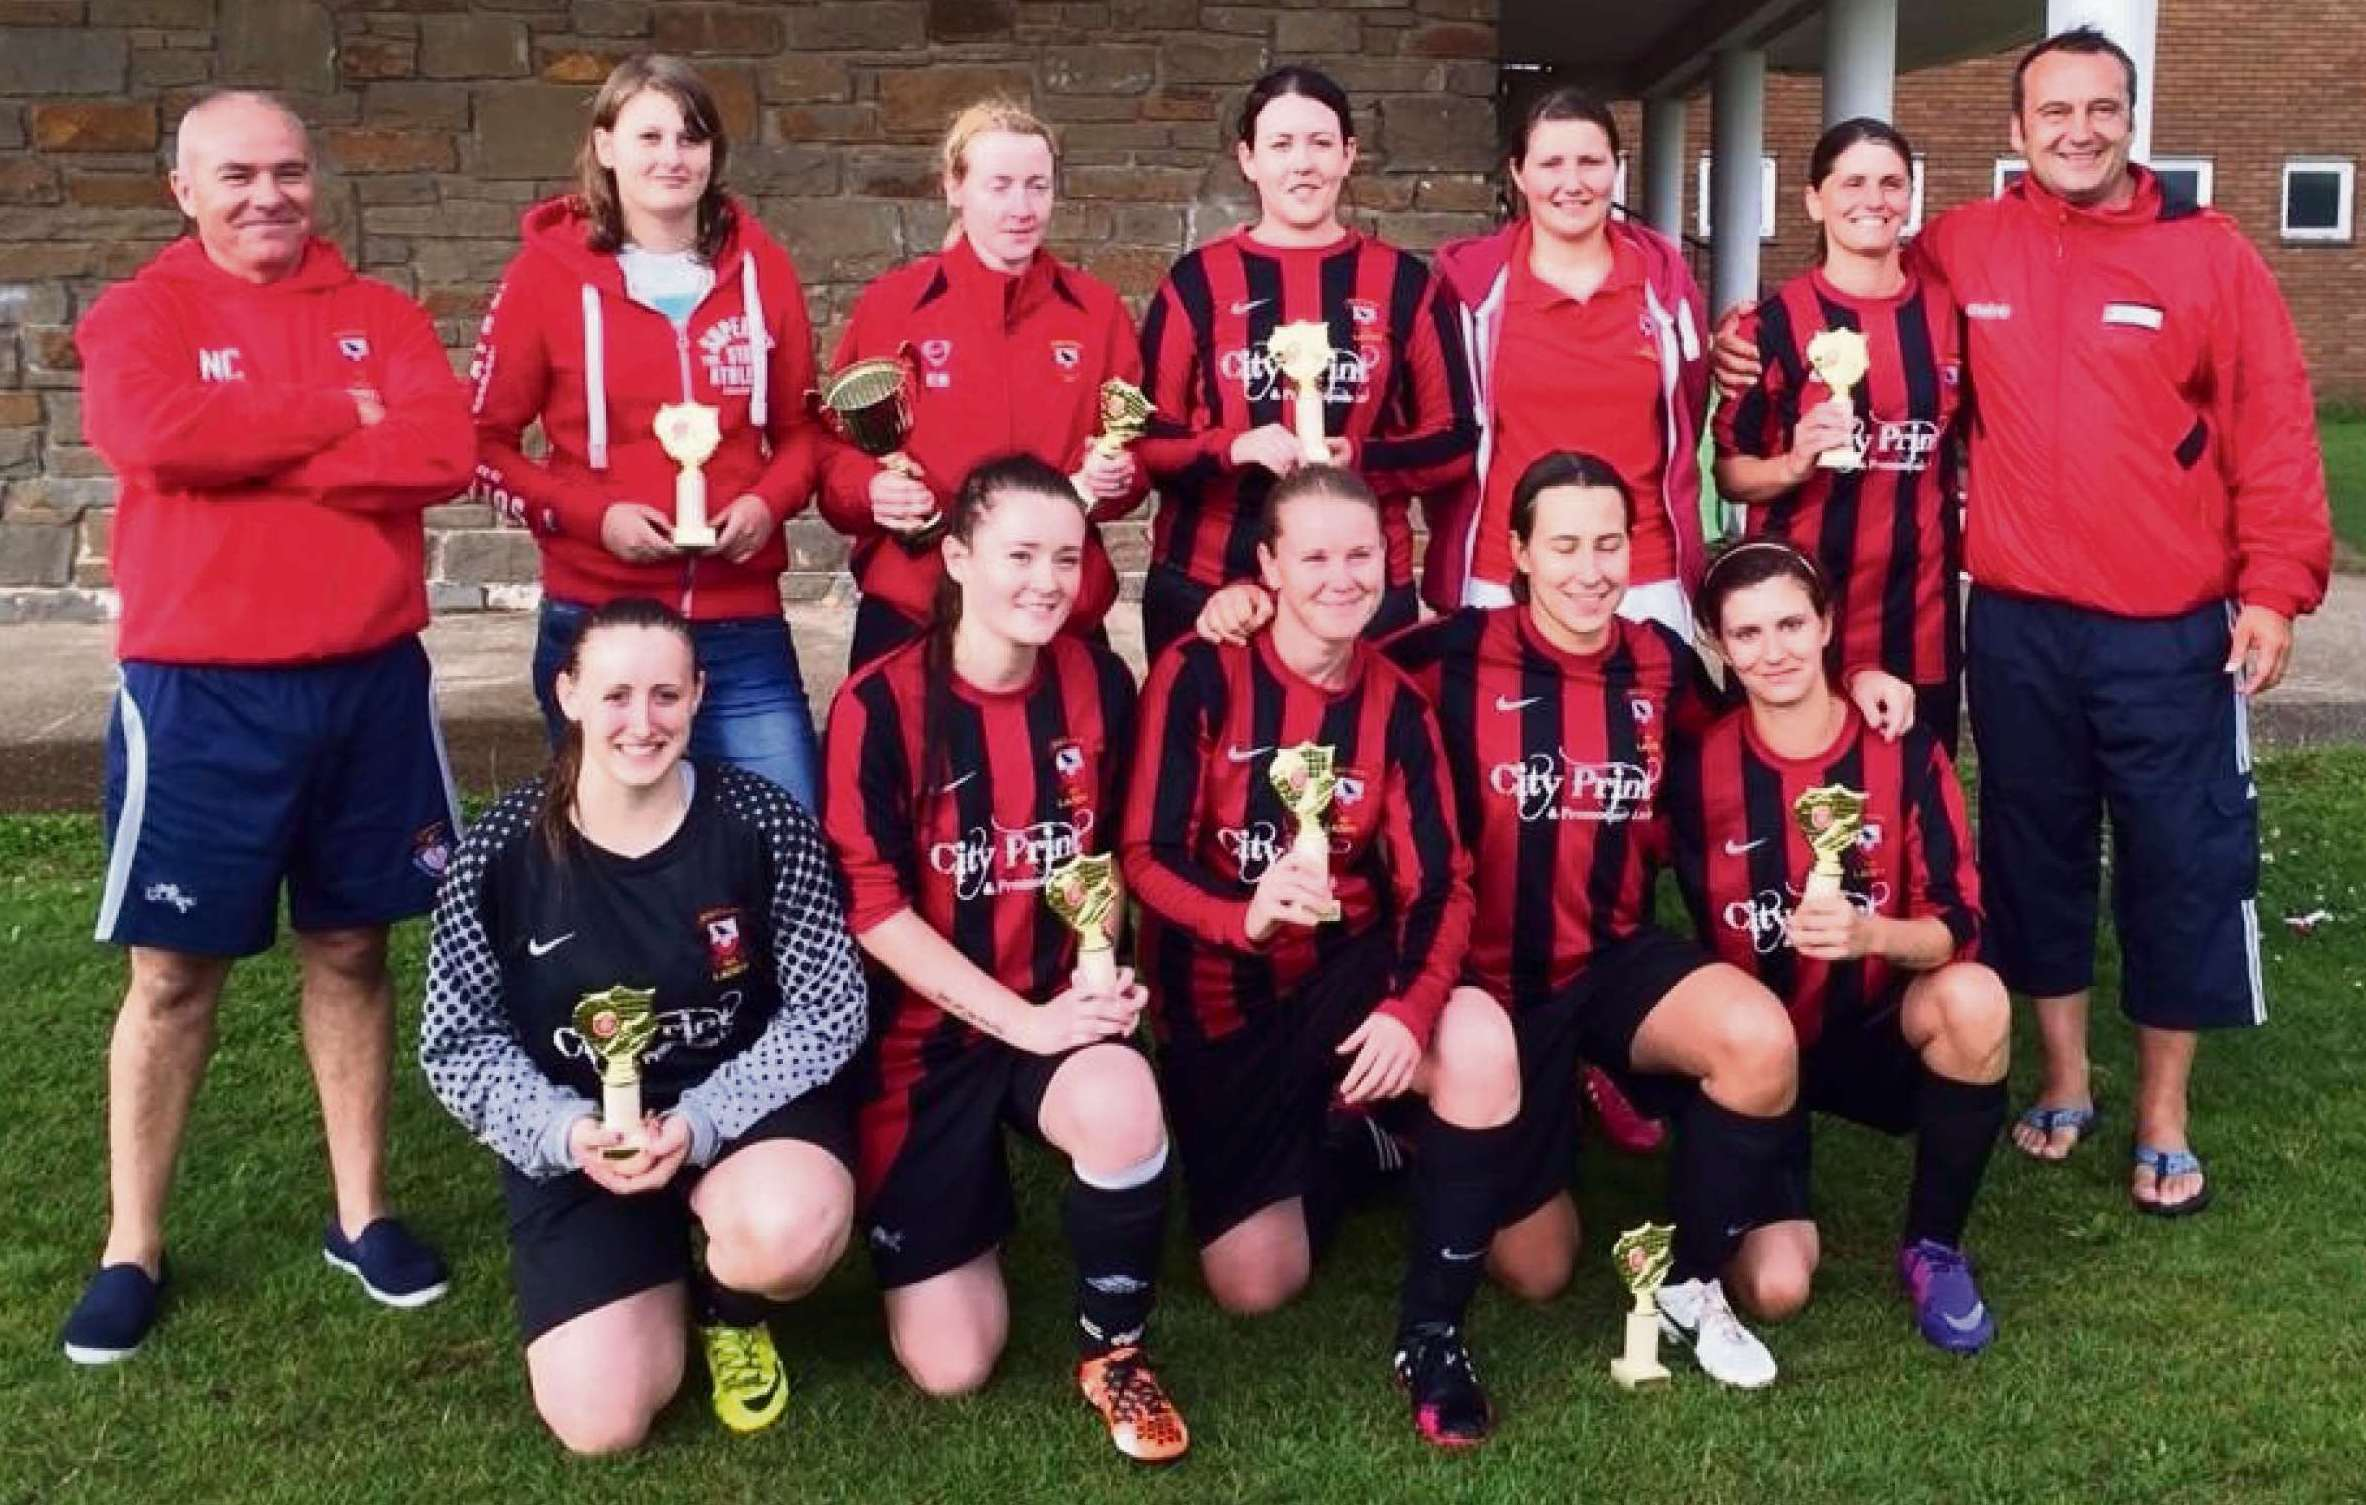 SUMMER SUCCESS: Dinas Powys women's soccer side - winners of the South Wales Ladies FC summer tournament.